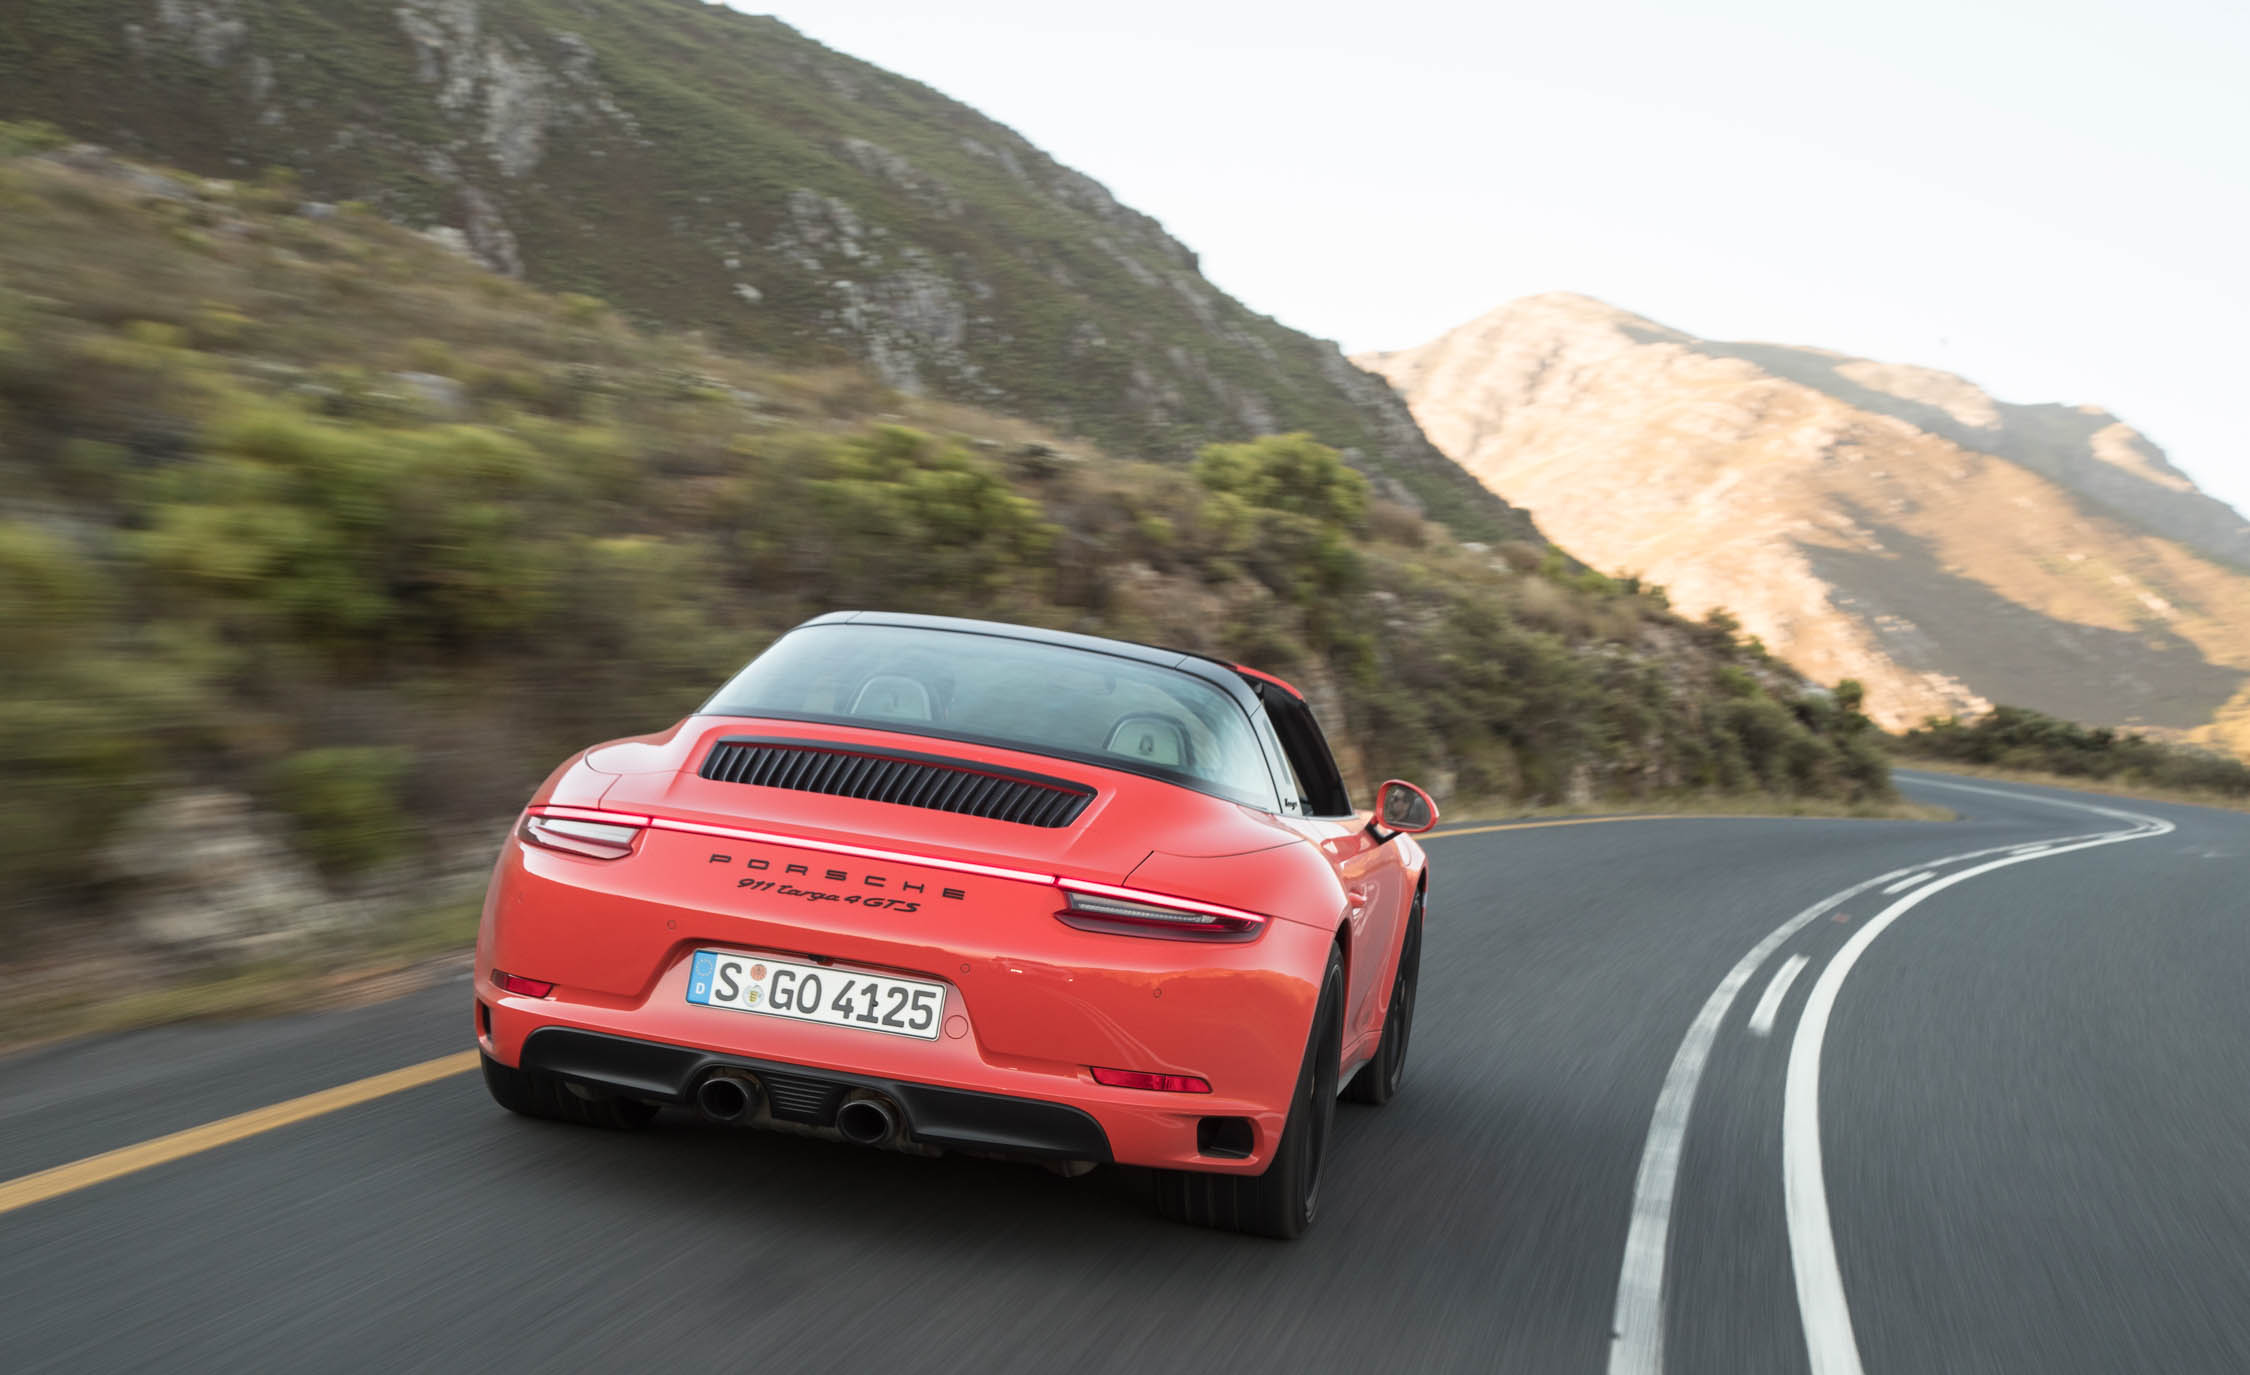 2017 Porsche 911 Targa 4 GTS Test Drive Rear View (Photo 95 of 97)